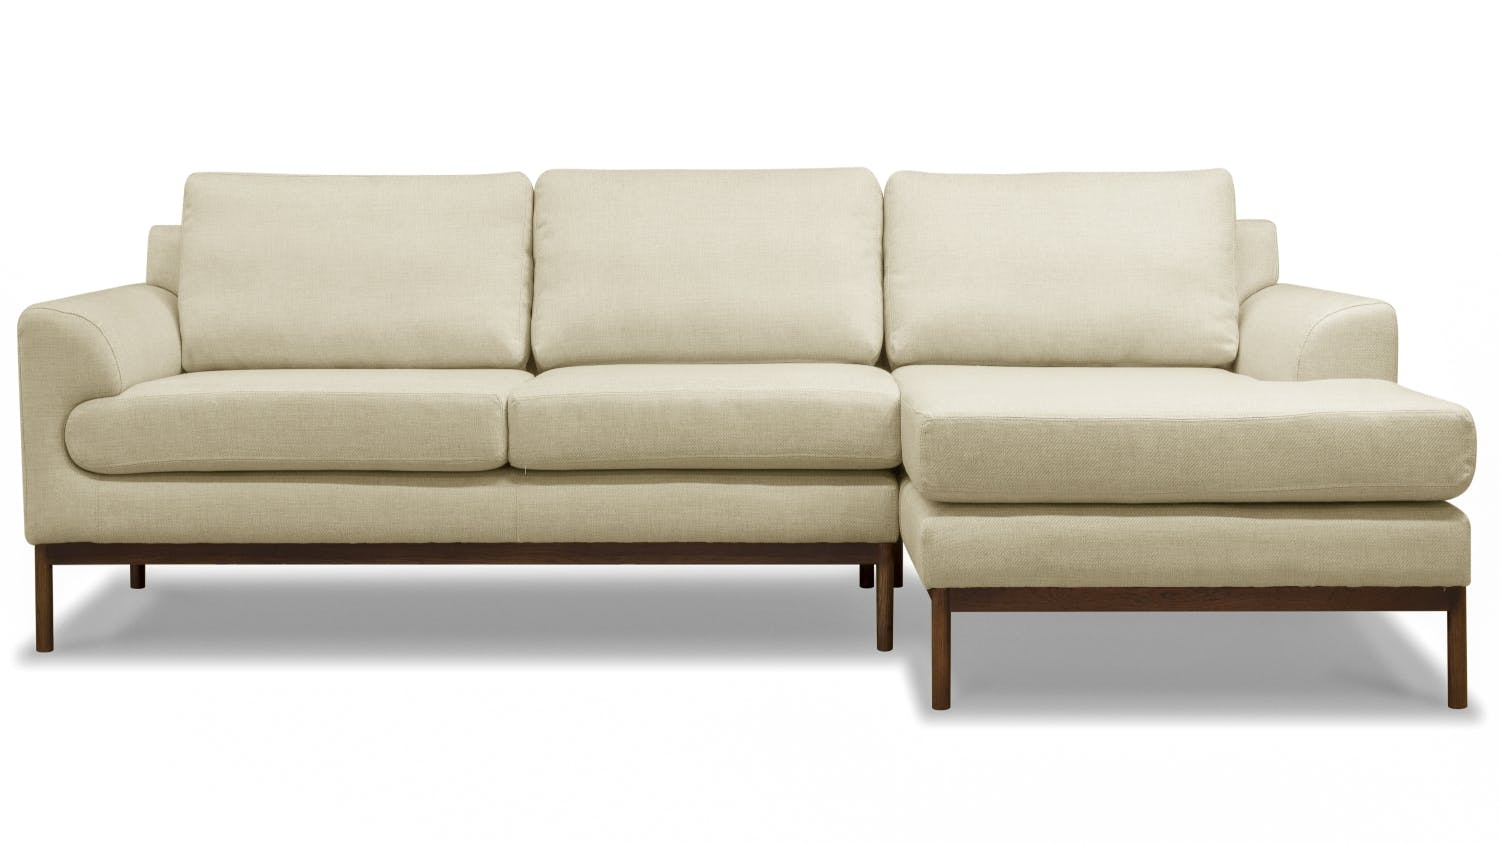 Stockholm 3 seater sofa with chaise beige harvey for 3 seater chaise sofa